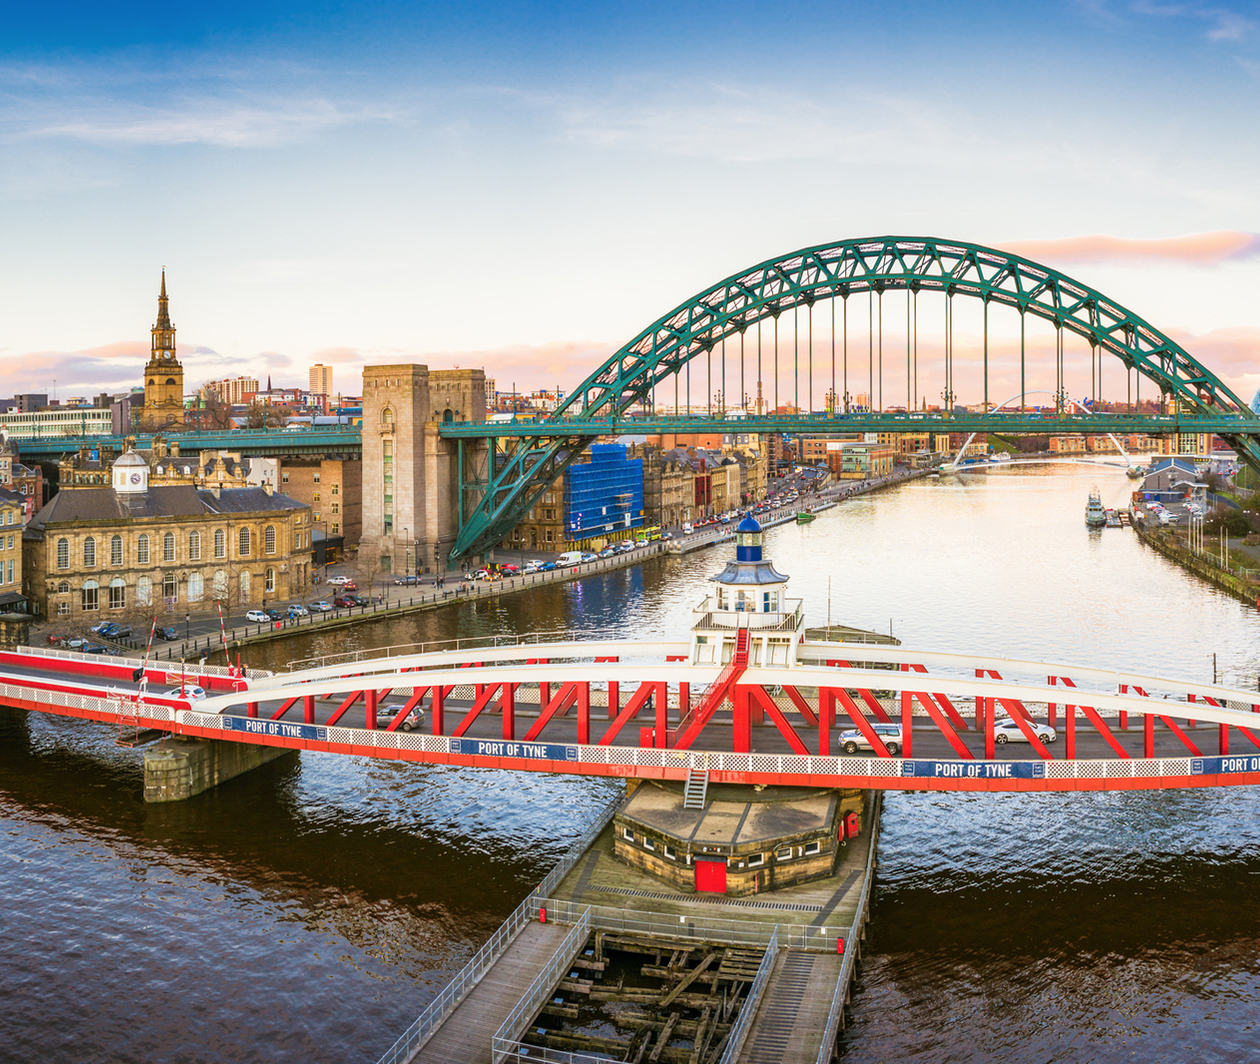 Global Geordies: The North East of England and the World